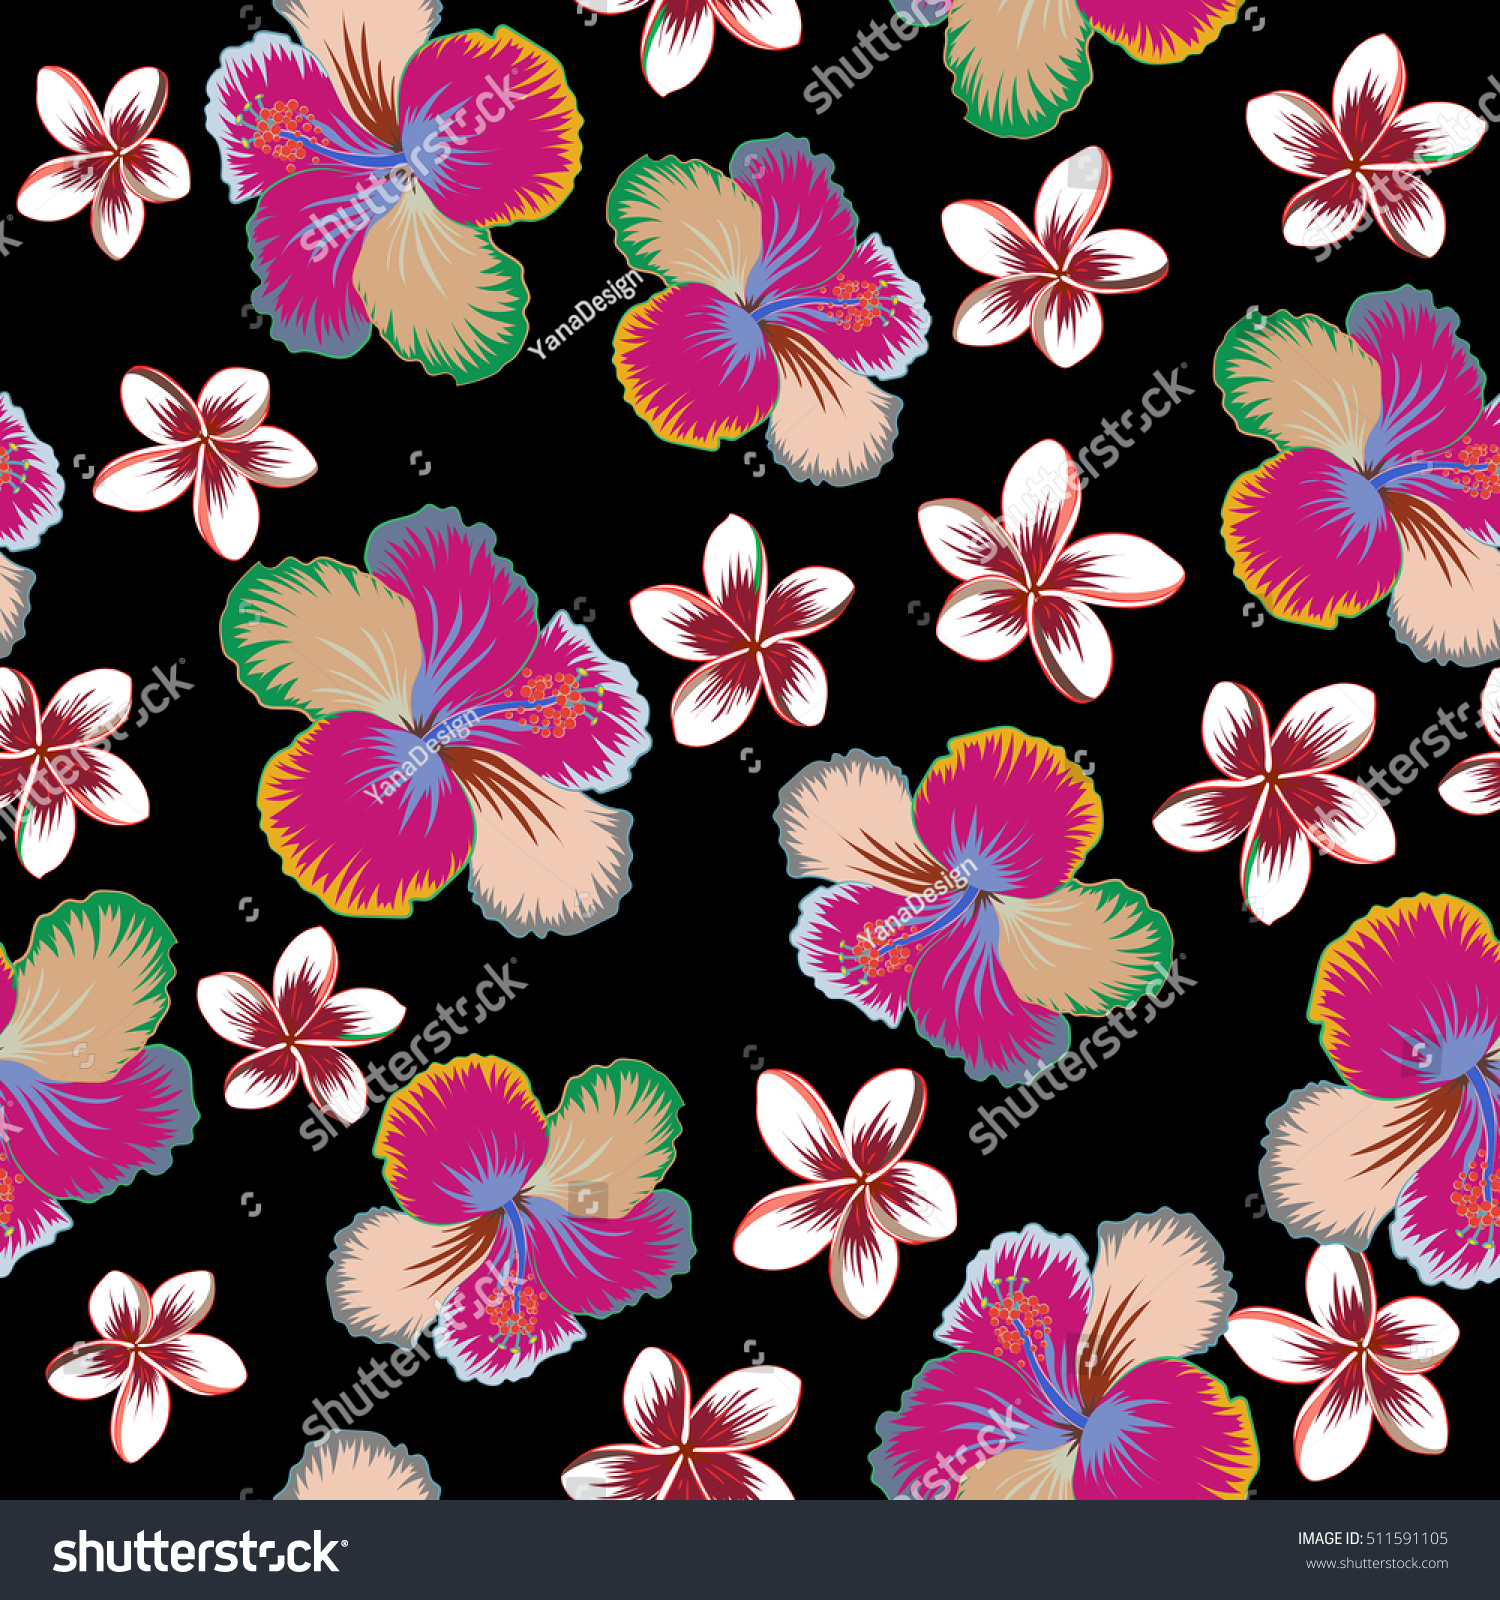 Bright Hawaiian Design With Tropical Plants Hibiscus And Plumeria